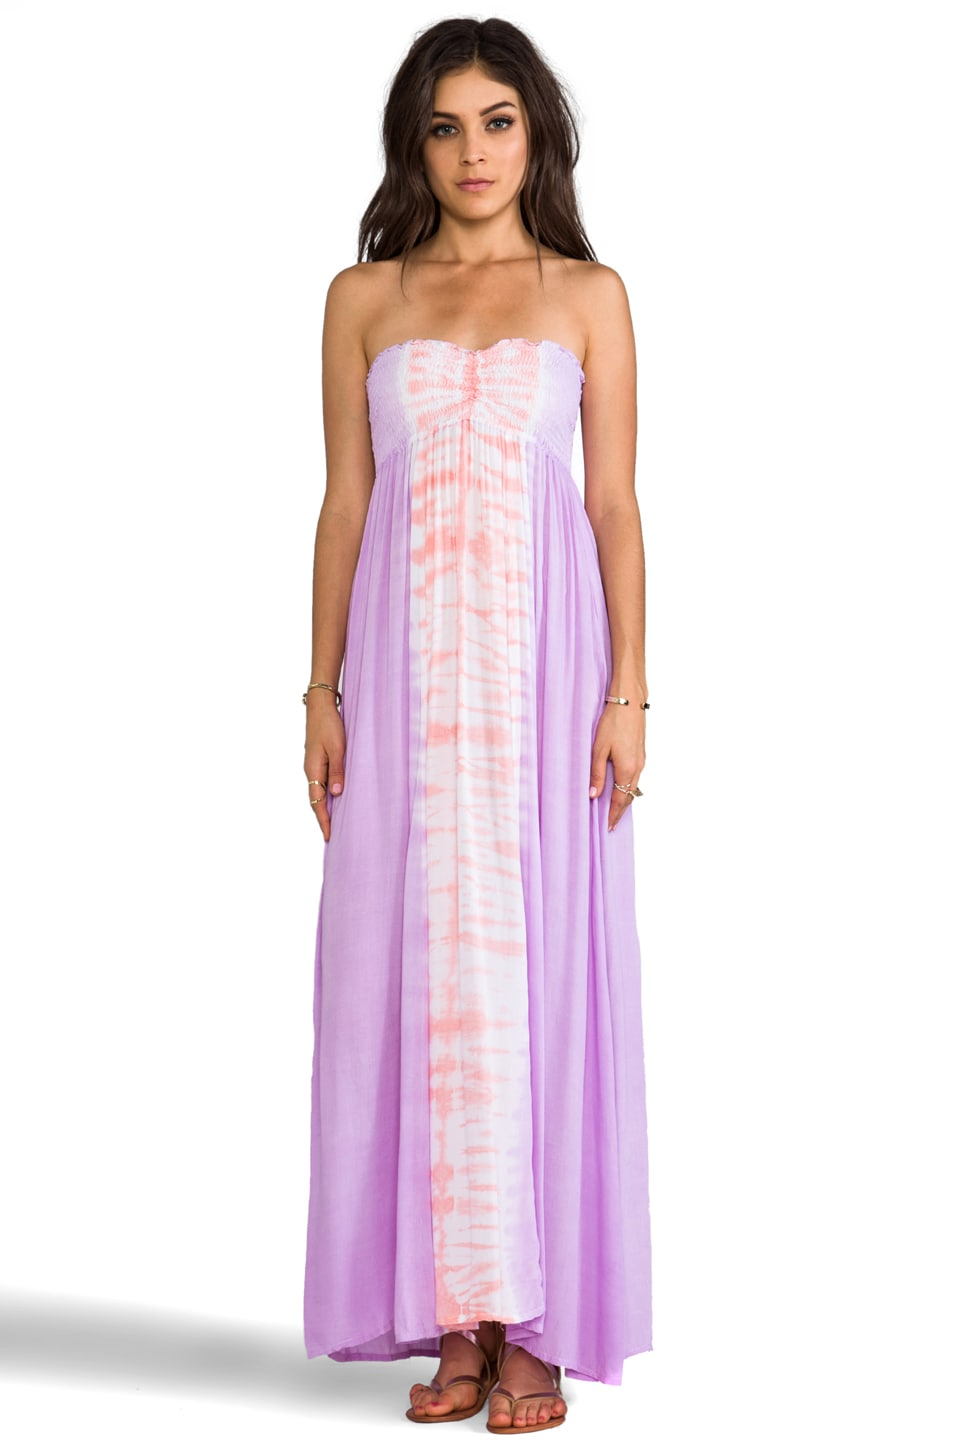 Tiare Hawaii Seaside Maxi Dress in Violet & Peach